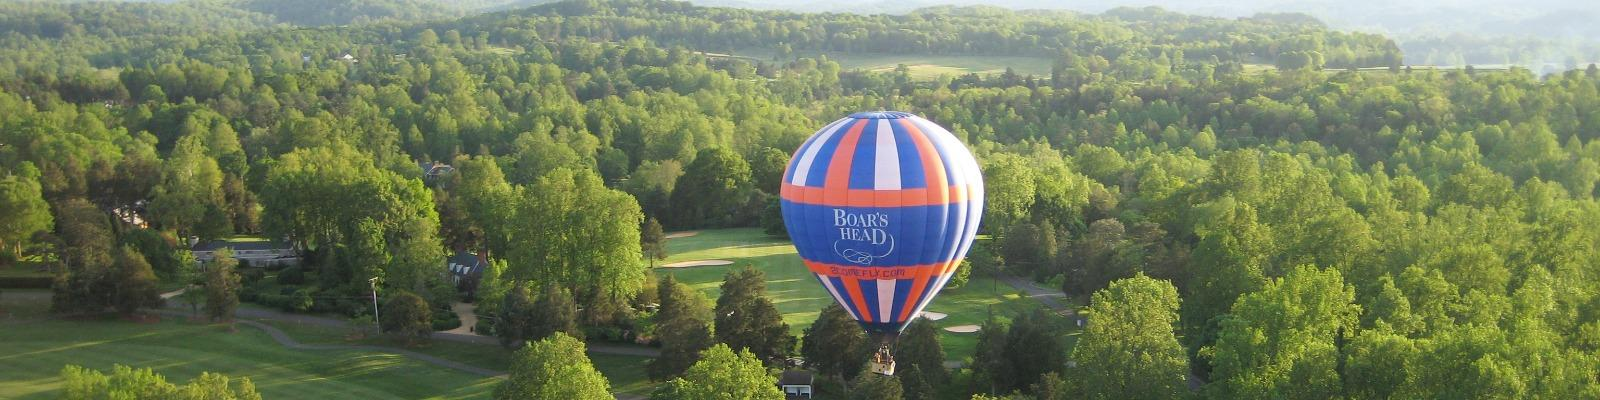 Boar's Head Hot Air Balloon Cover